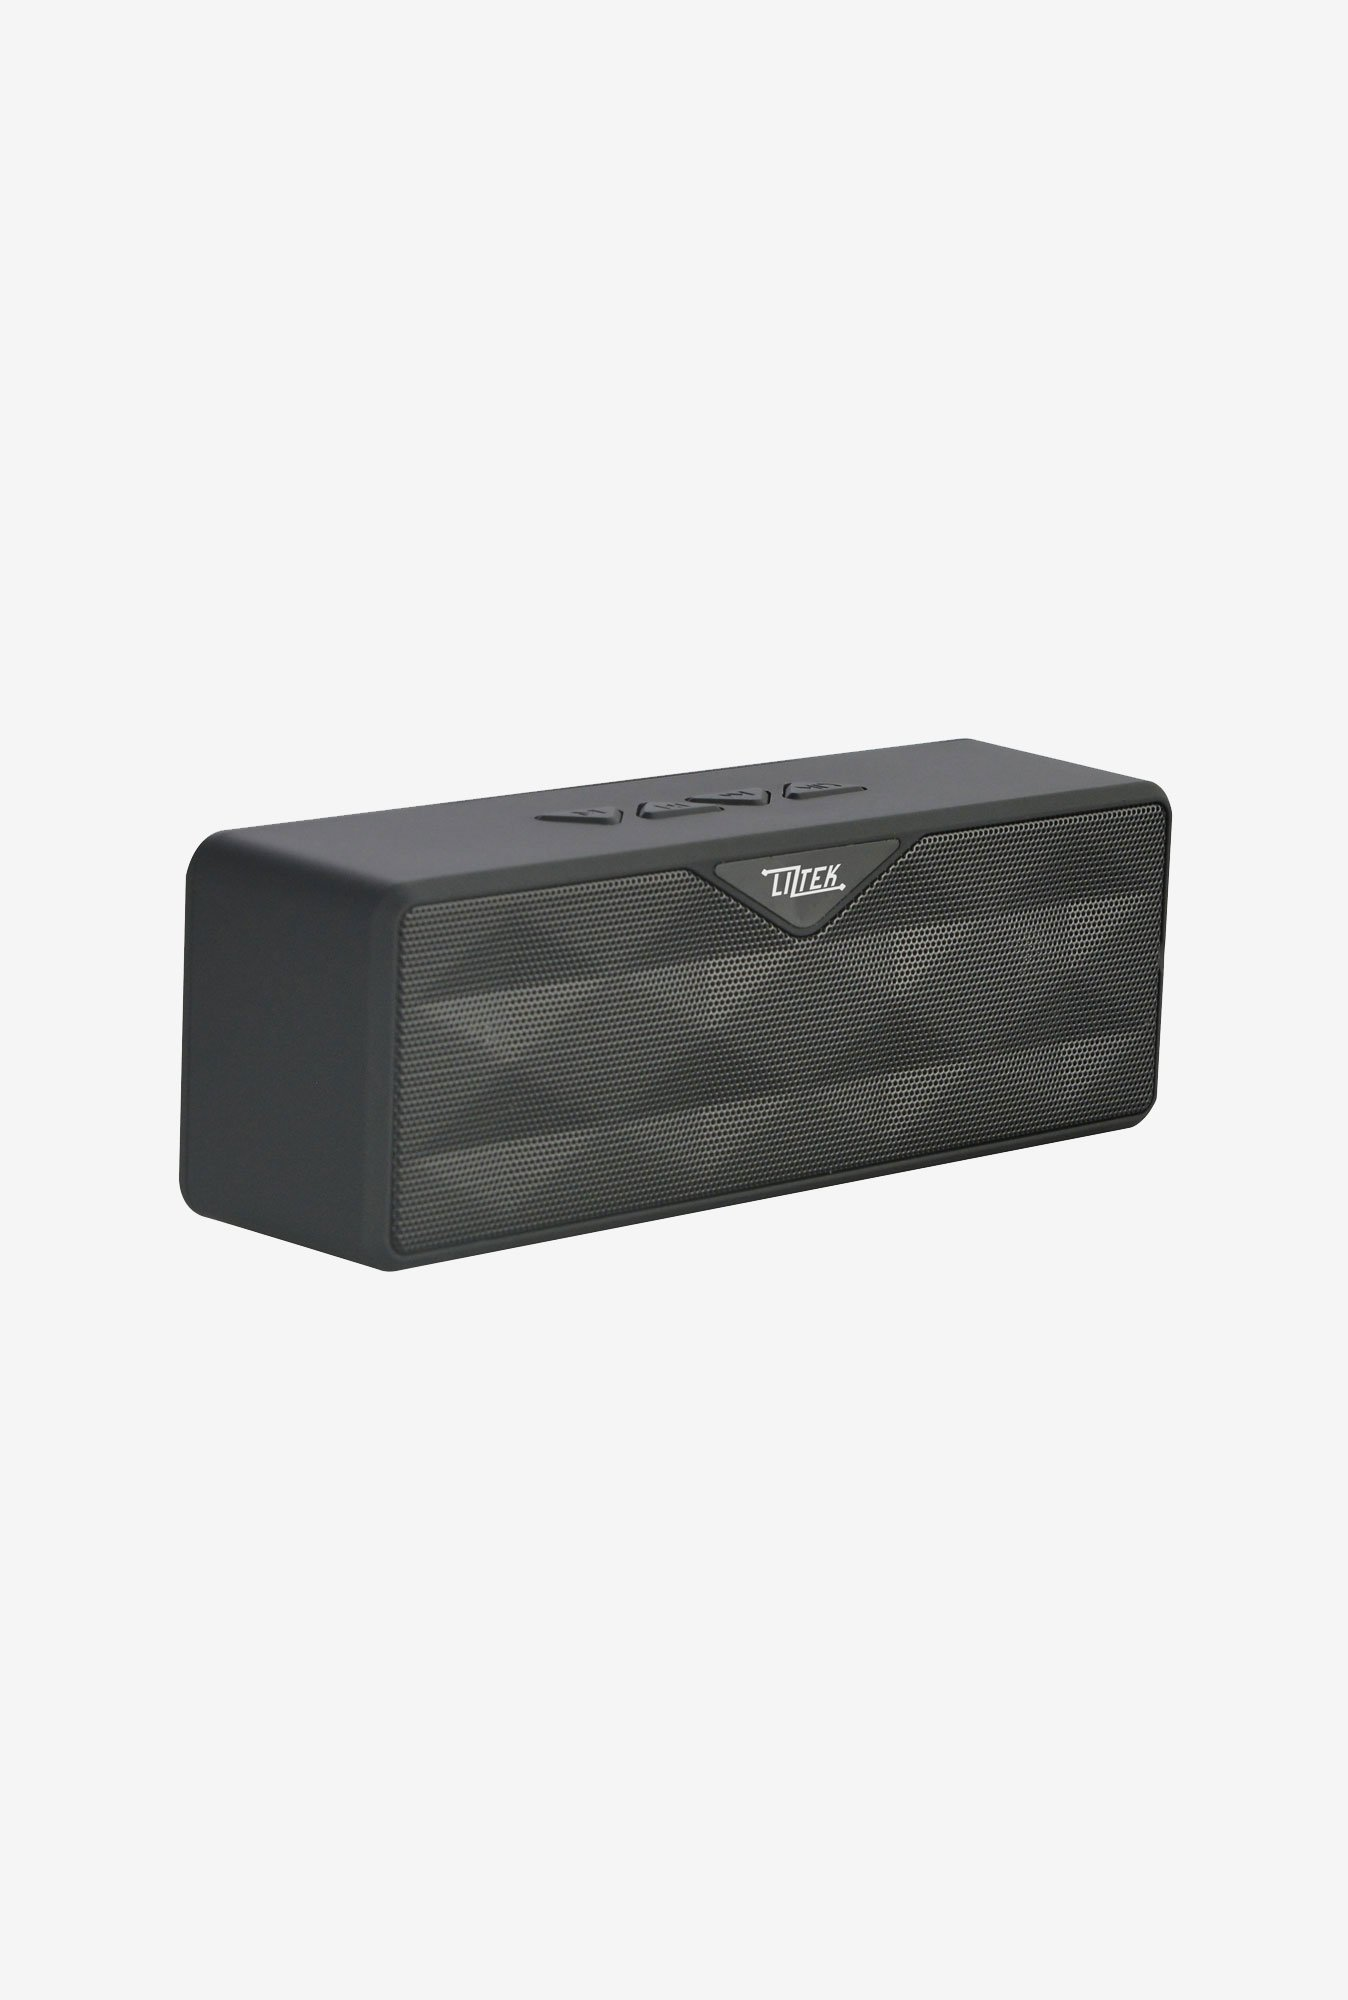 Liztek PSS-60 Wireless Bluetooth Speaker (Black)